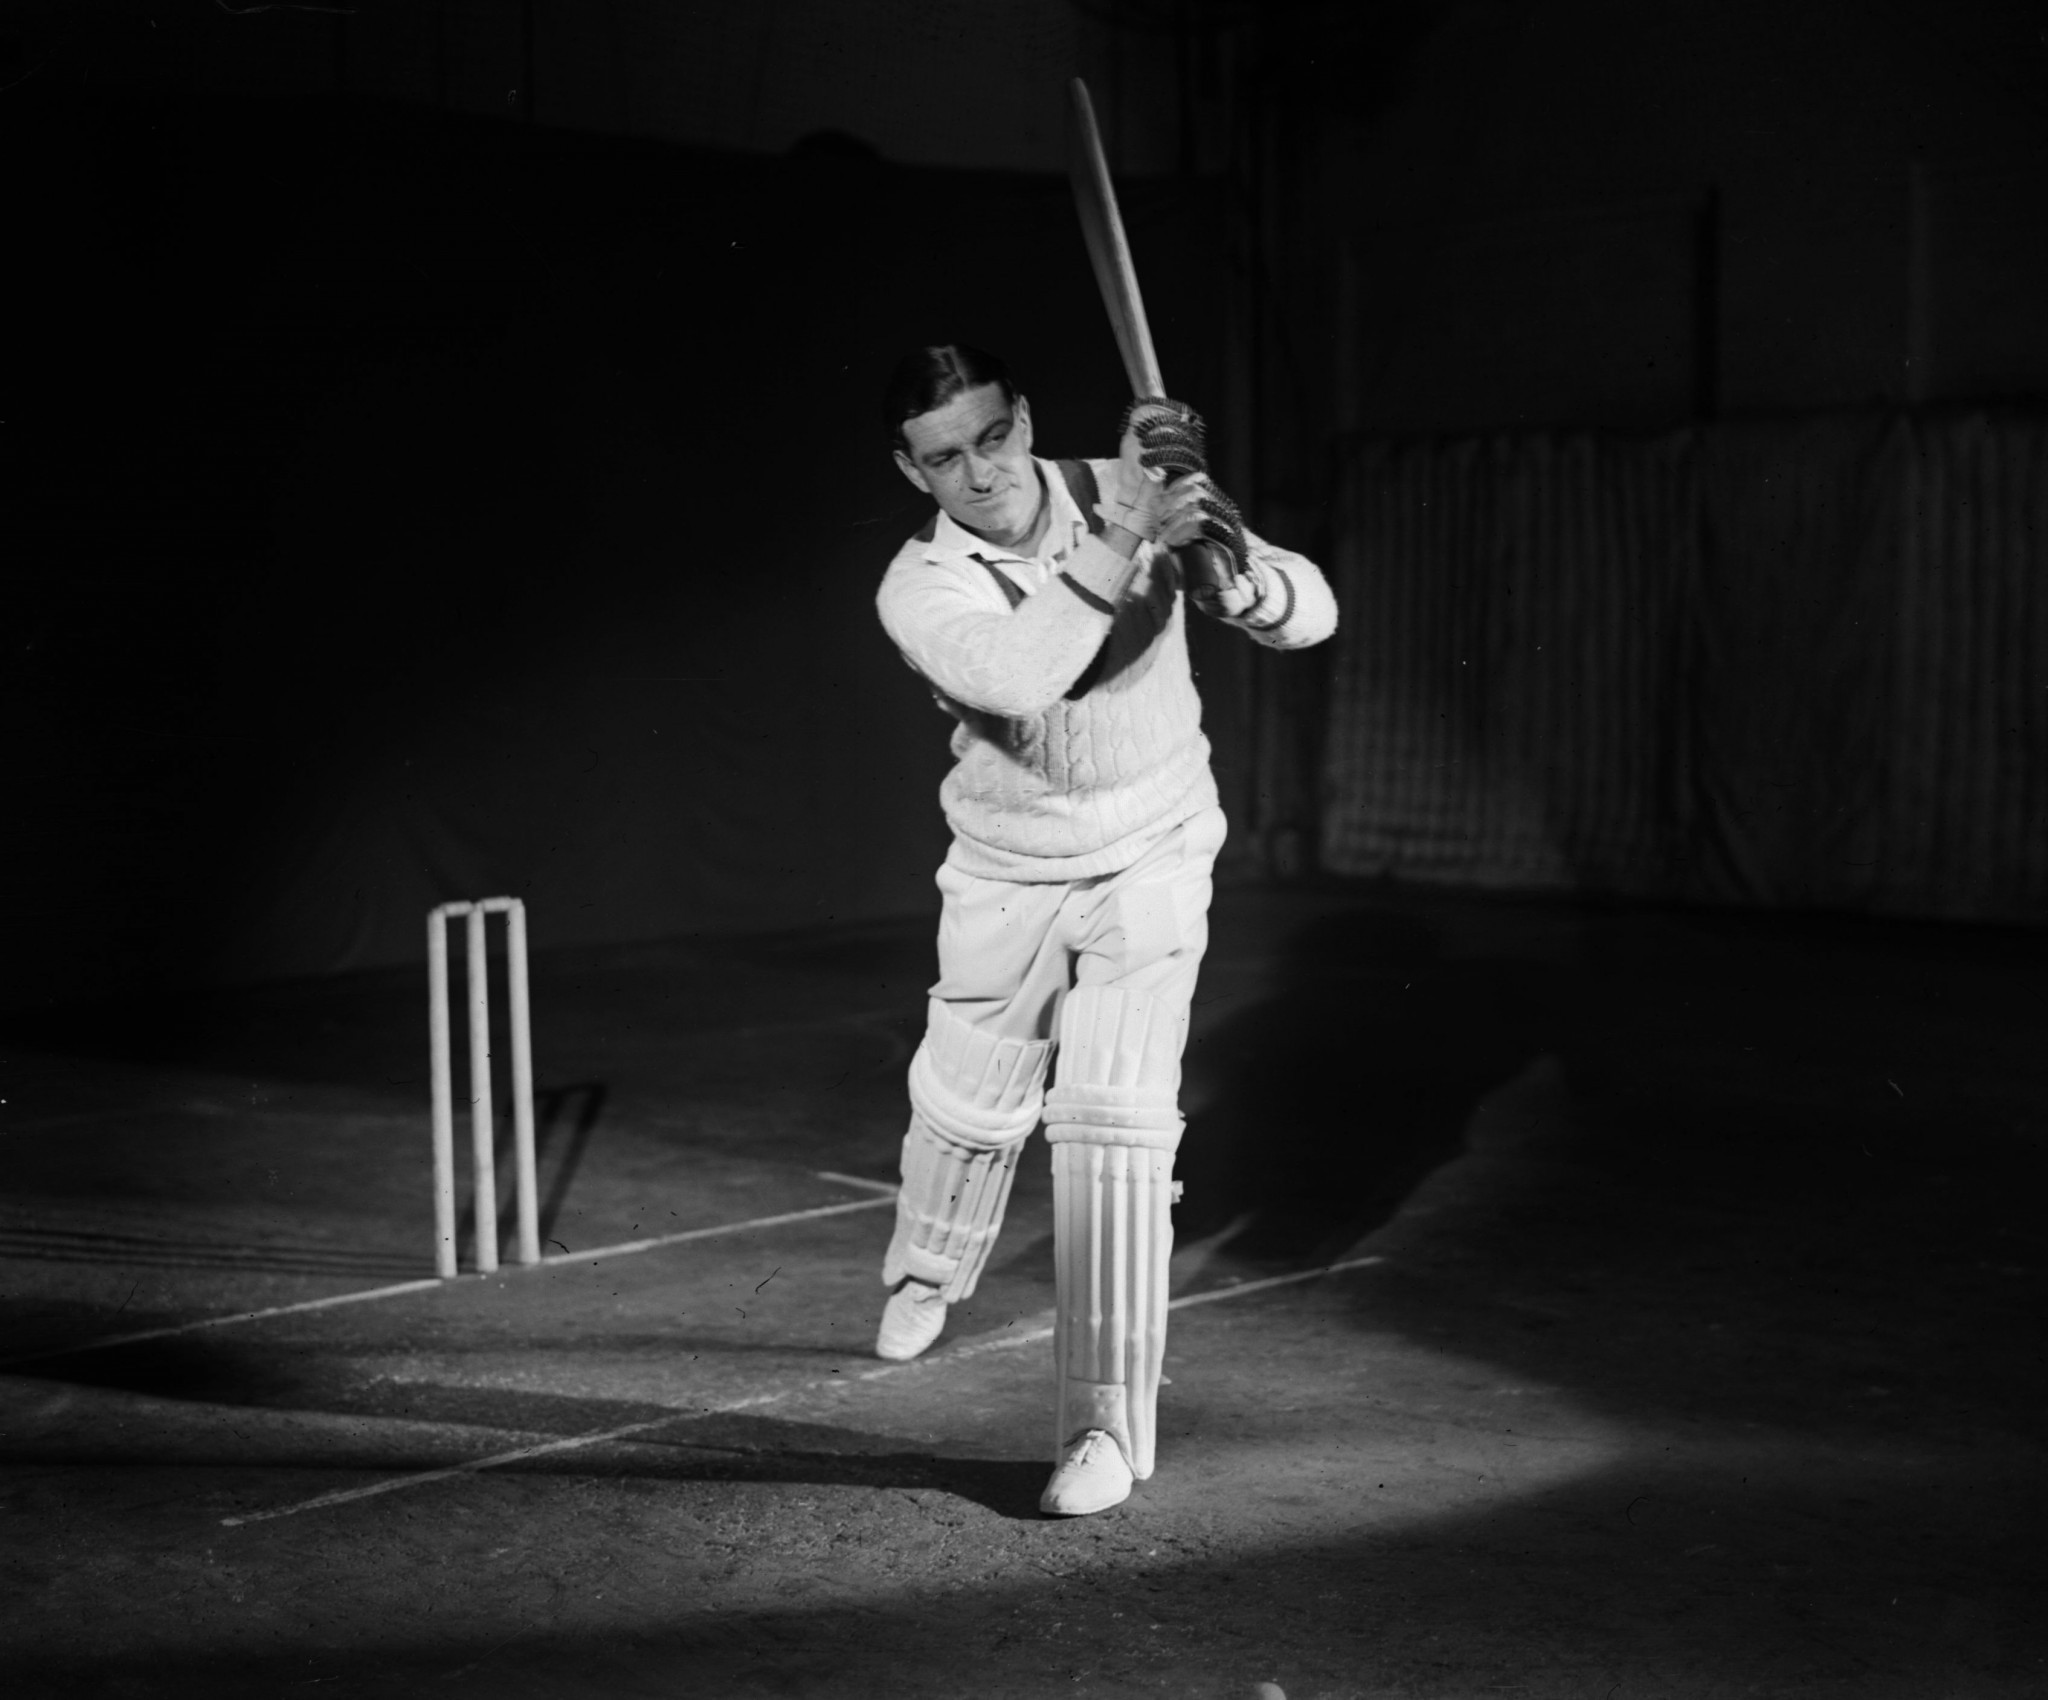 Walter Hammond was among the England players to set sail for South Africa, where a timeless Test match was played ©Getty Images